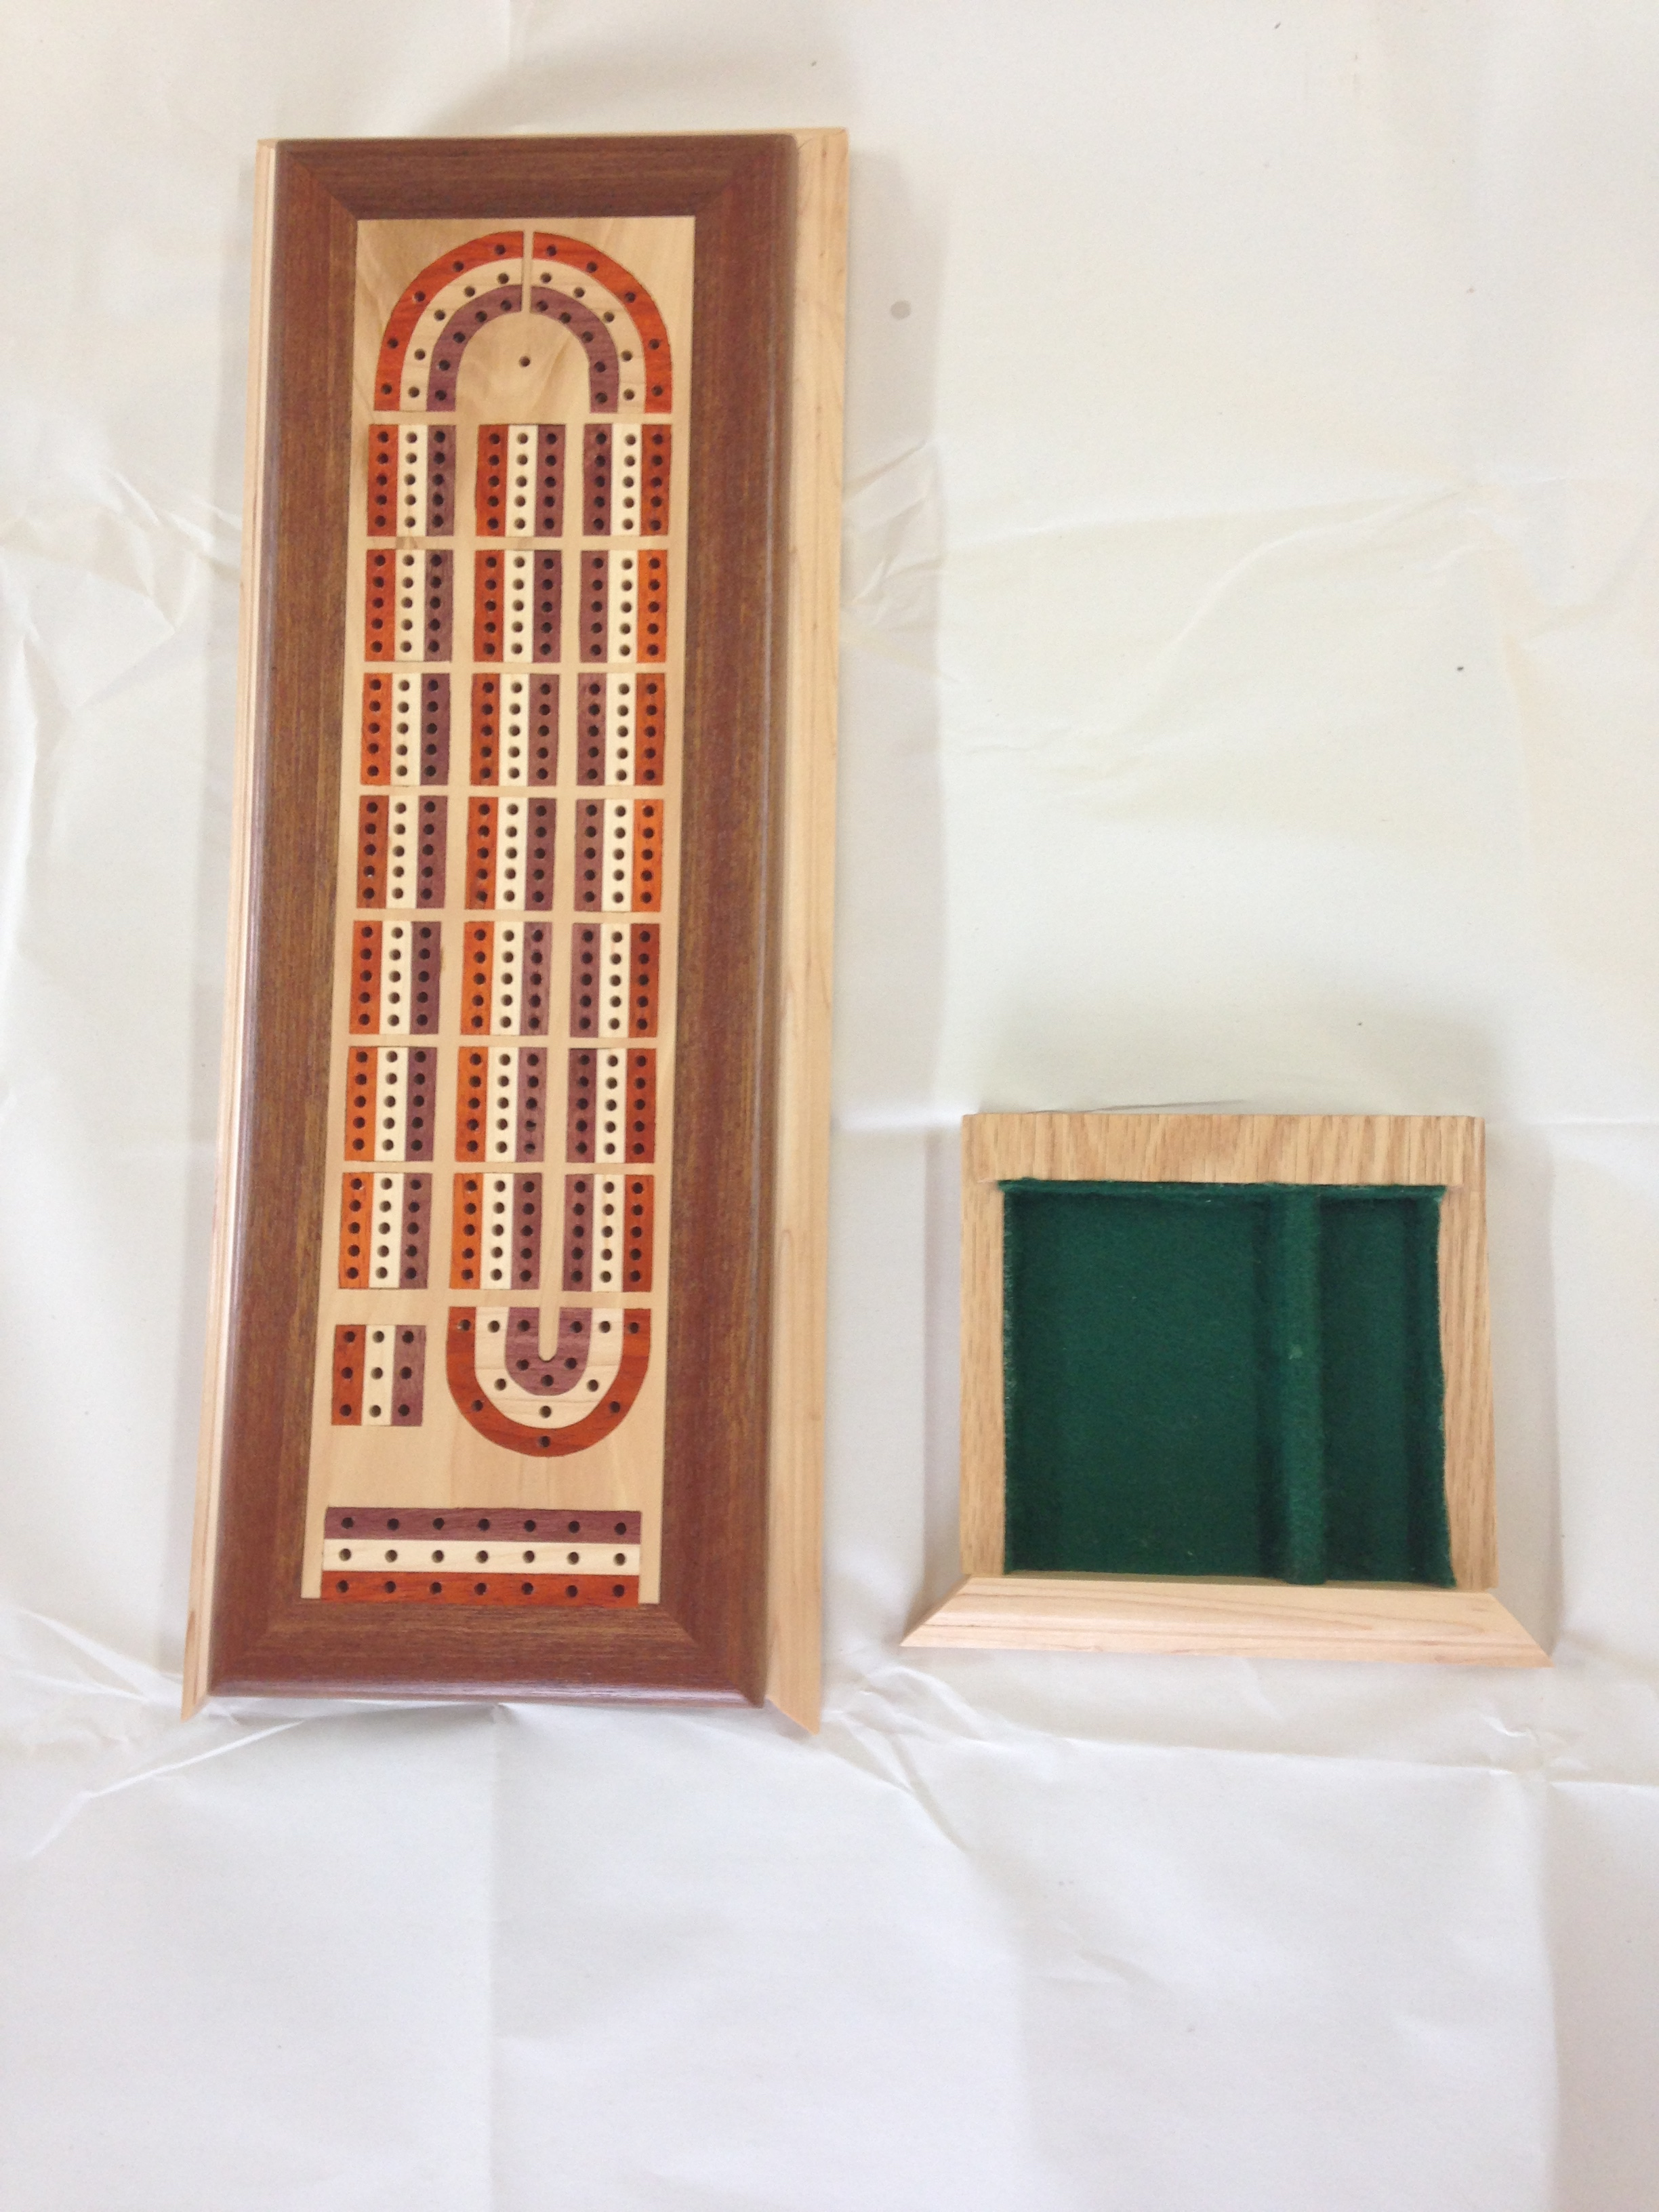 Inlayed Cribbage Board & Card Tray